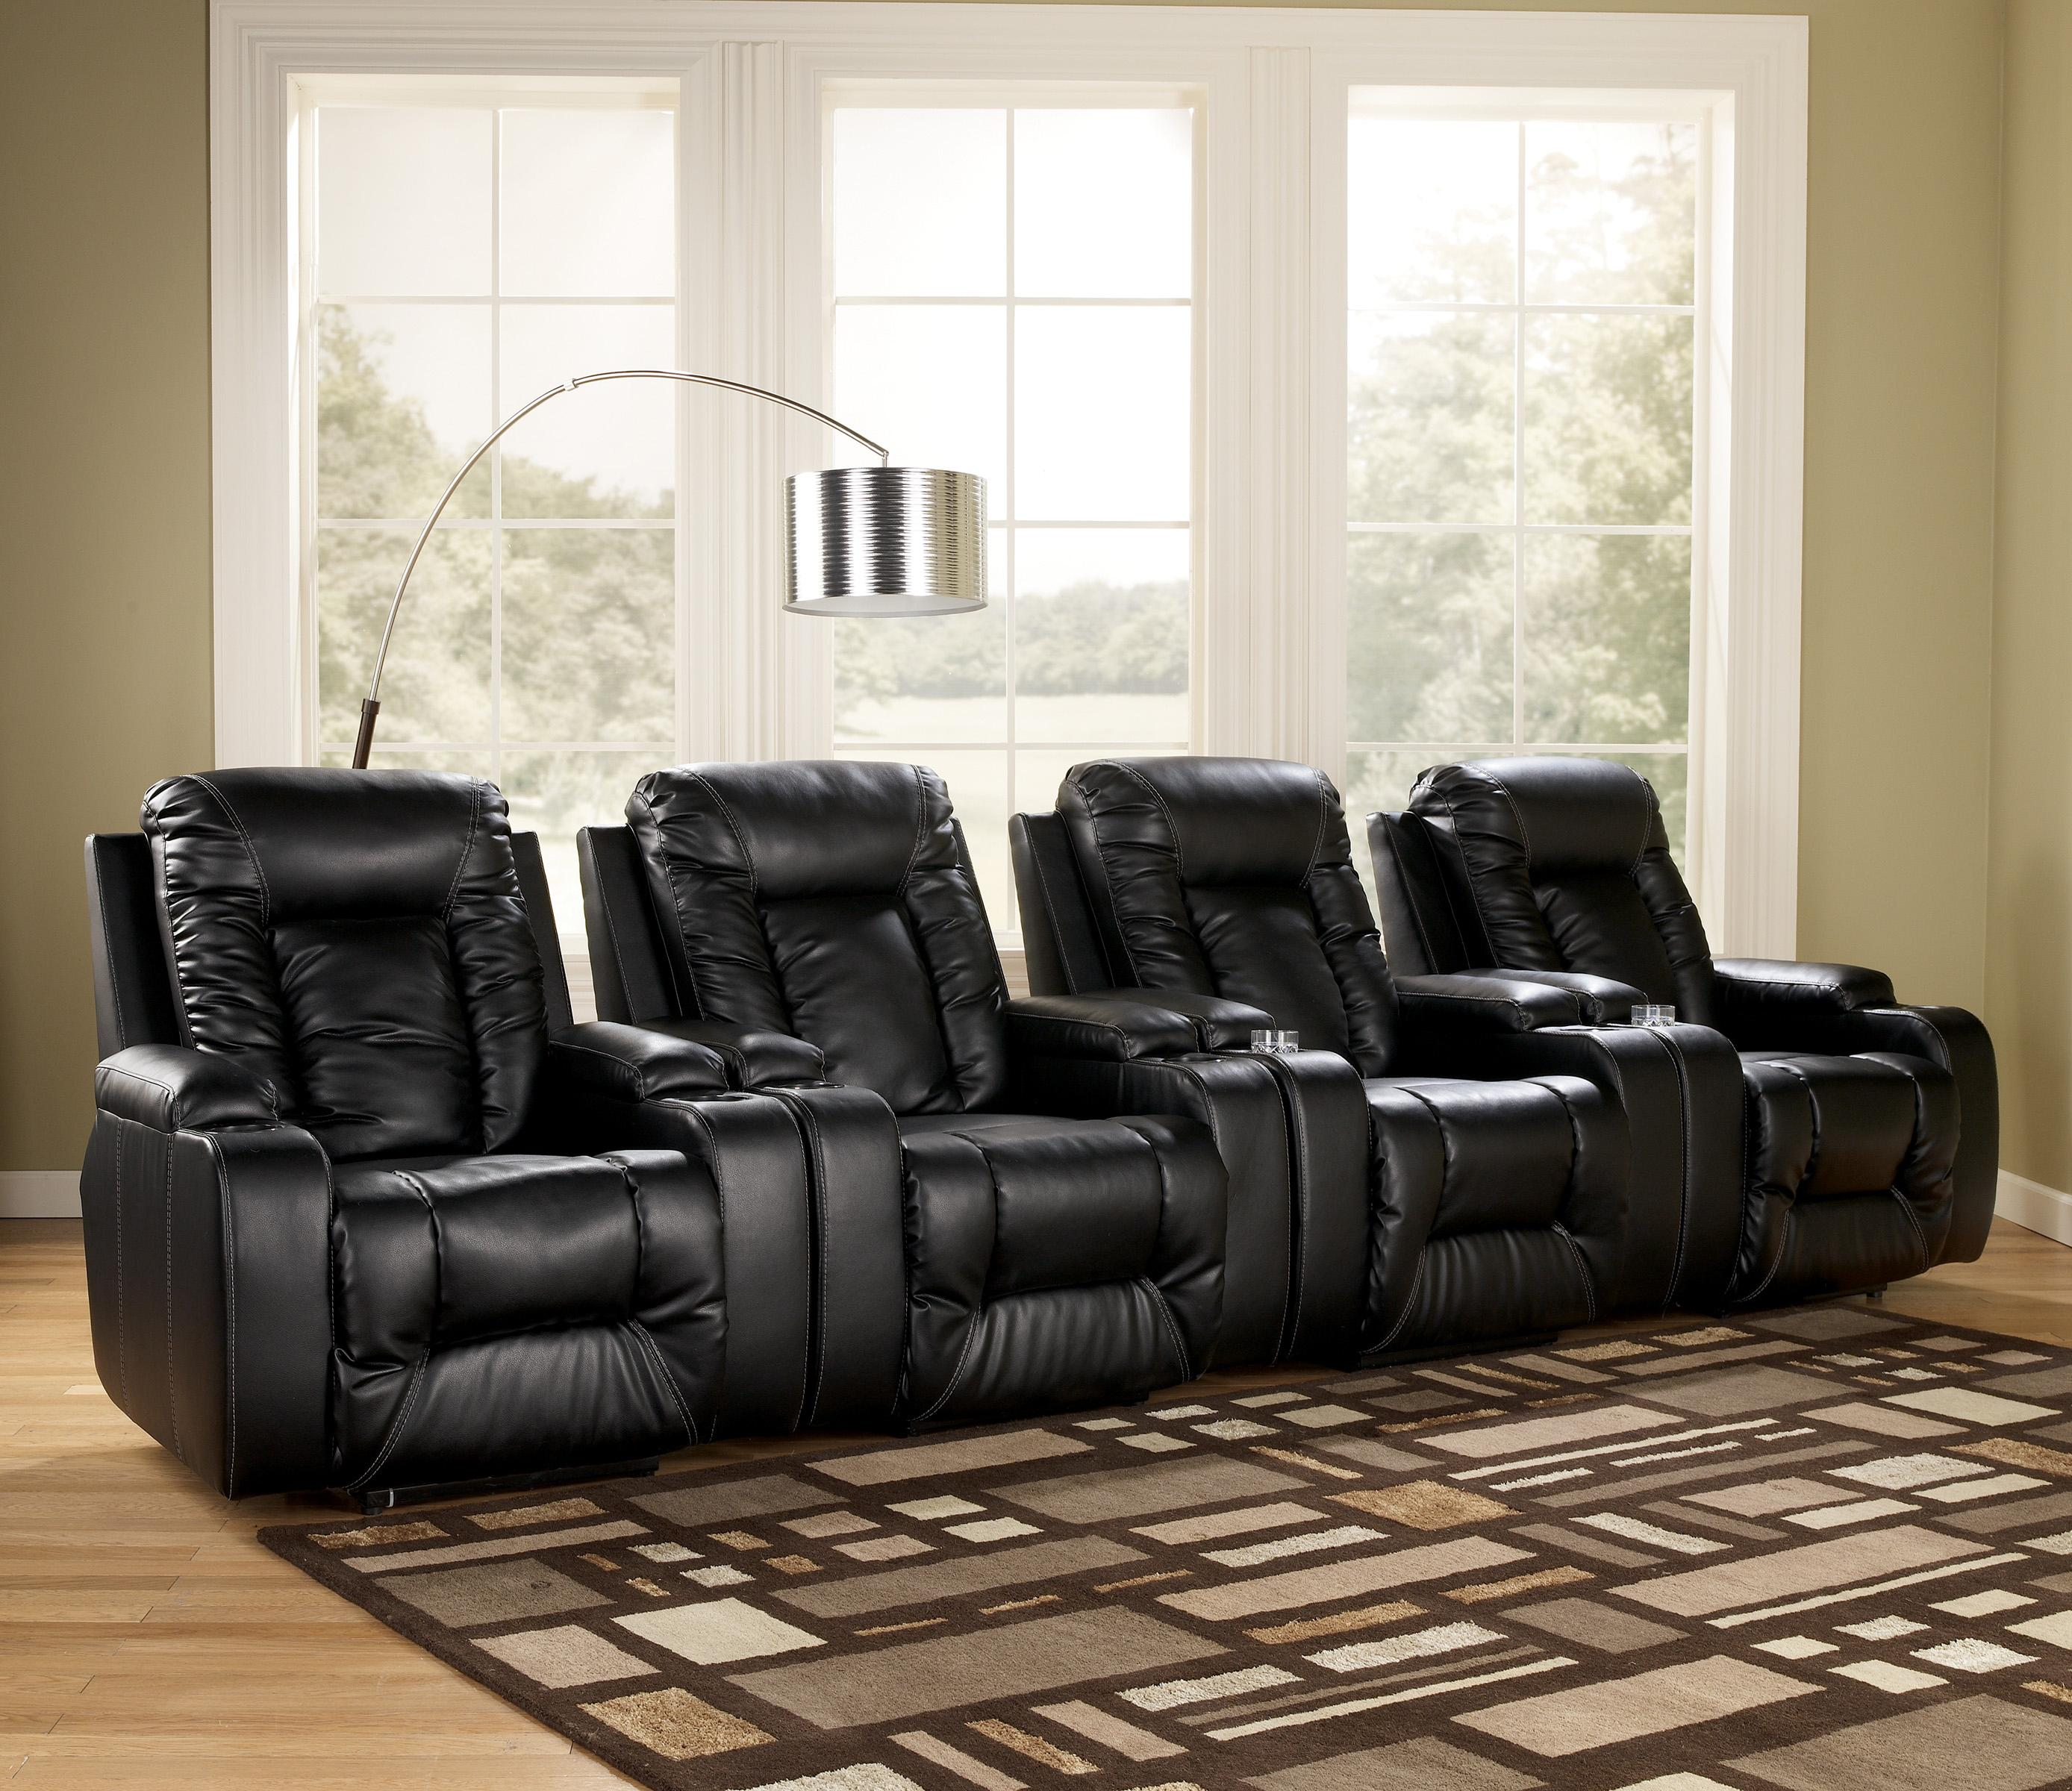 Signature Design by Ashley Matinee DuraBlend® - Eclipse 4 Piece Theater Seating Group - Item Number: 8740106x4